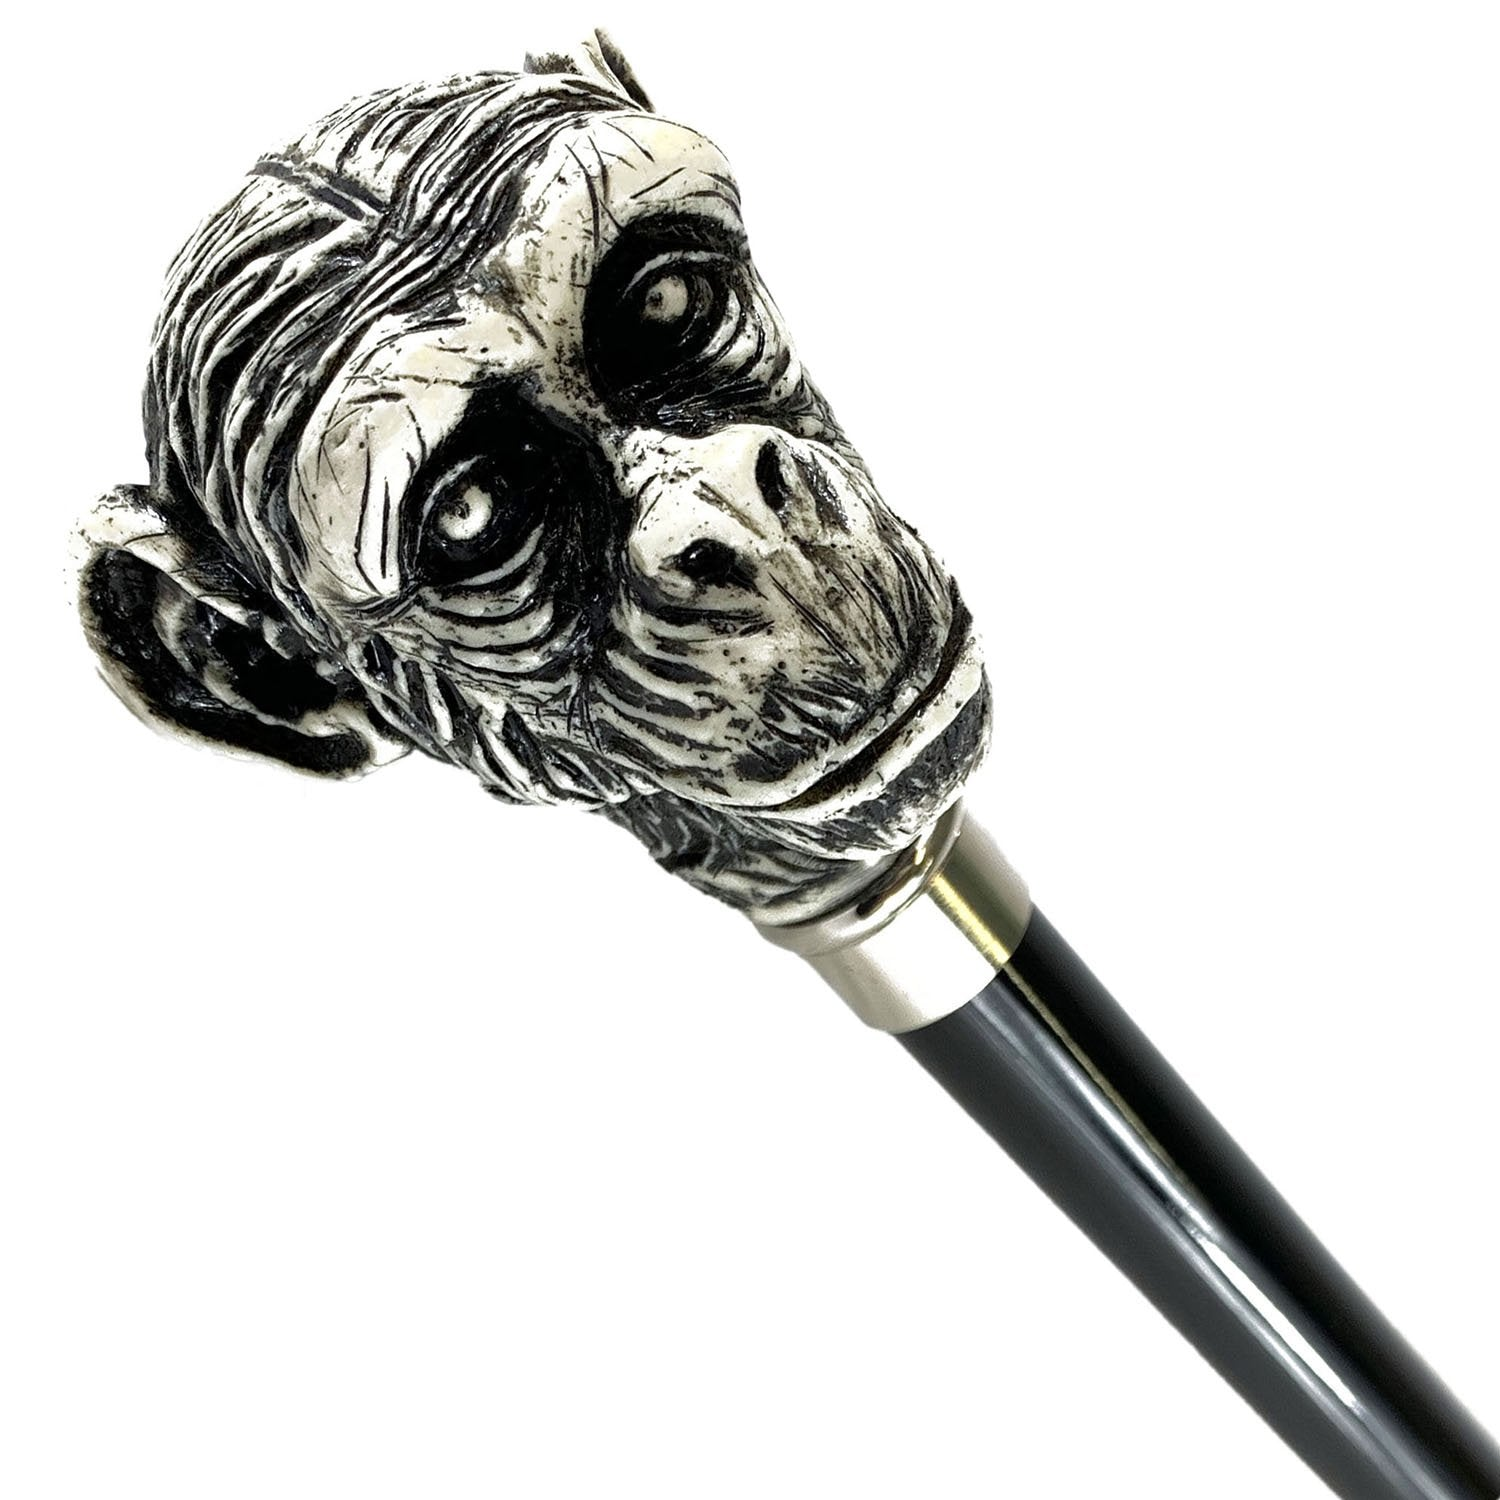 Walking Stick Monkey Lacquered in an Ivory Color - IL MARCHESATO LUXURY UMBRELLAS, CANES AND SHOEHORNS